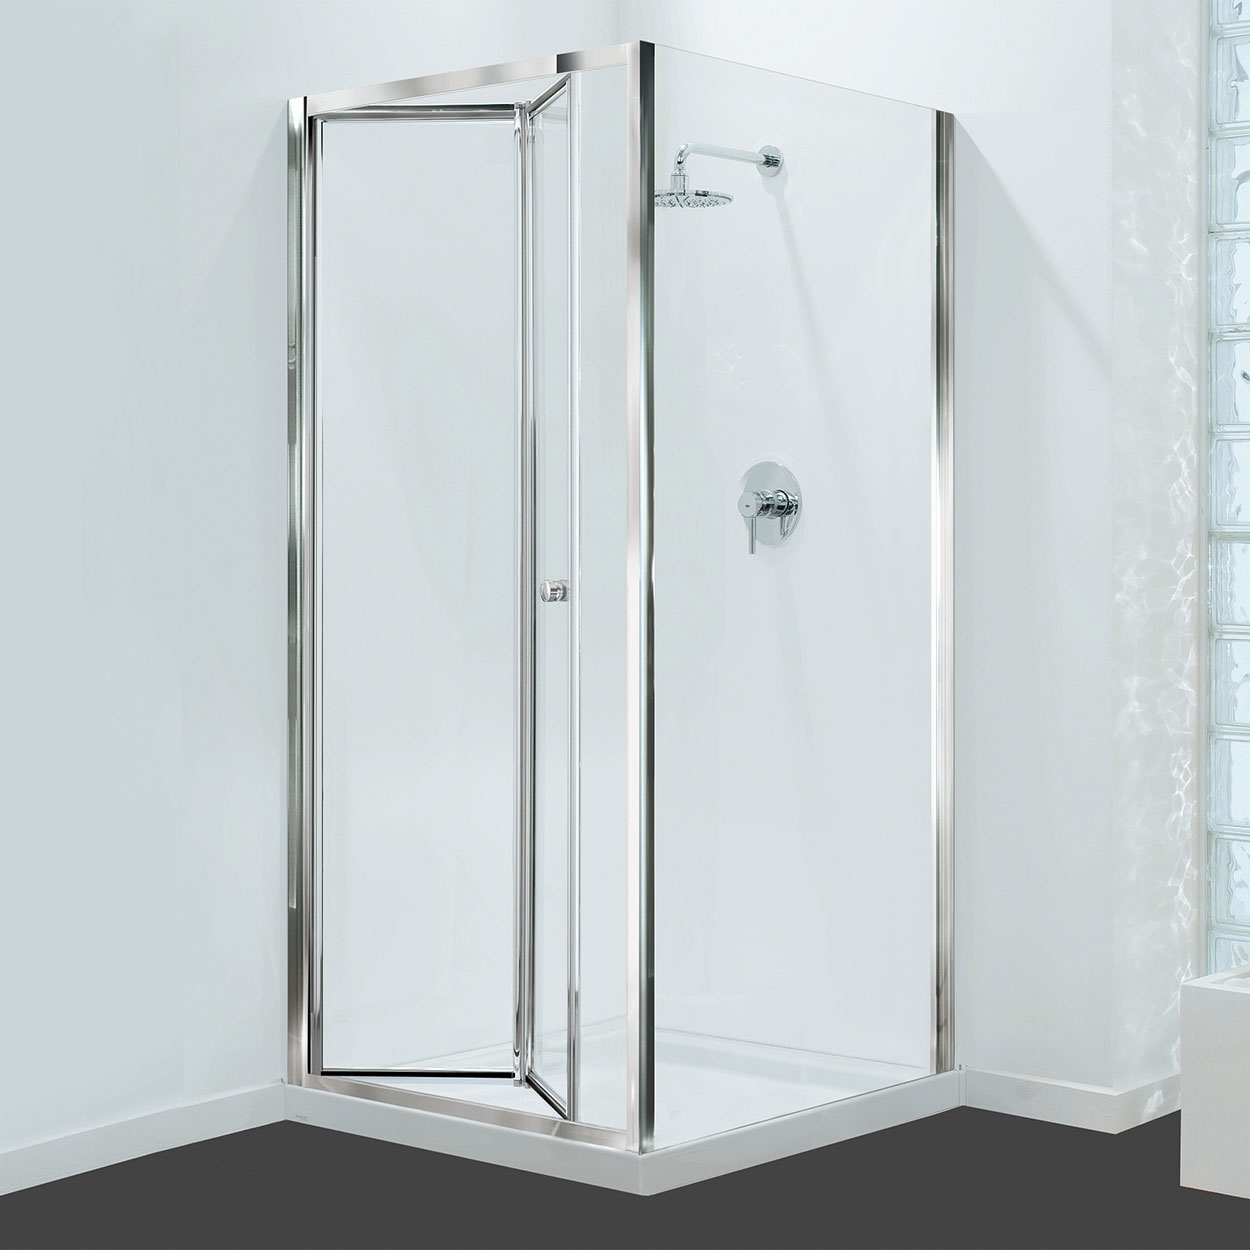 Permalink to Folding Doors For Shower